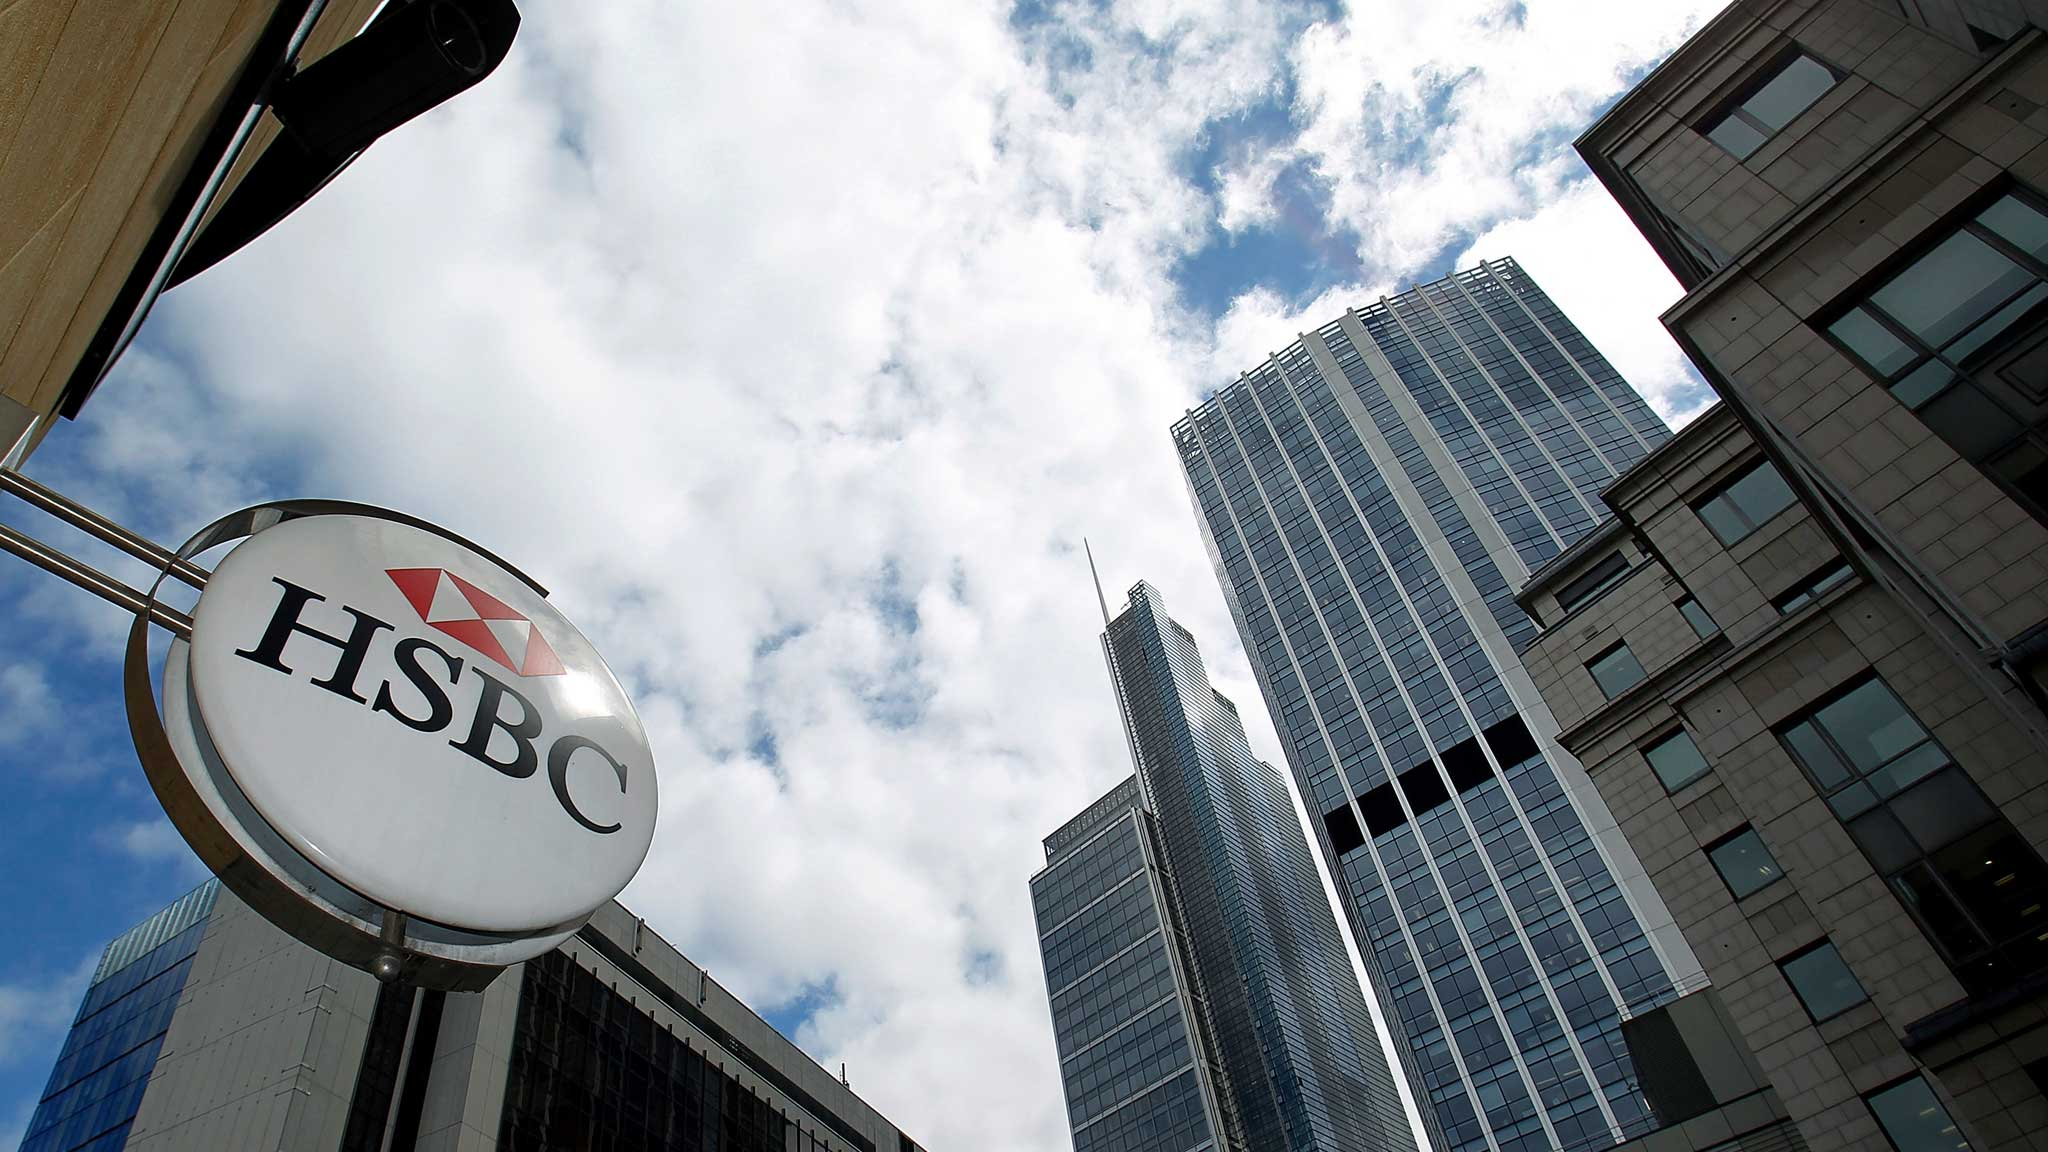 HSBC sets aside $2bn to cover fines | Financial Times